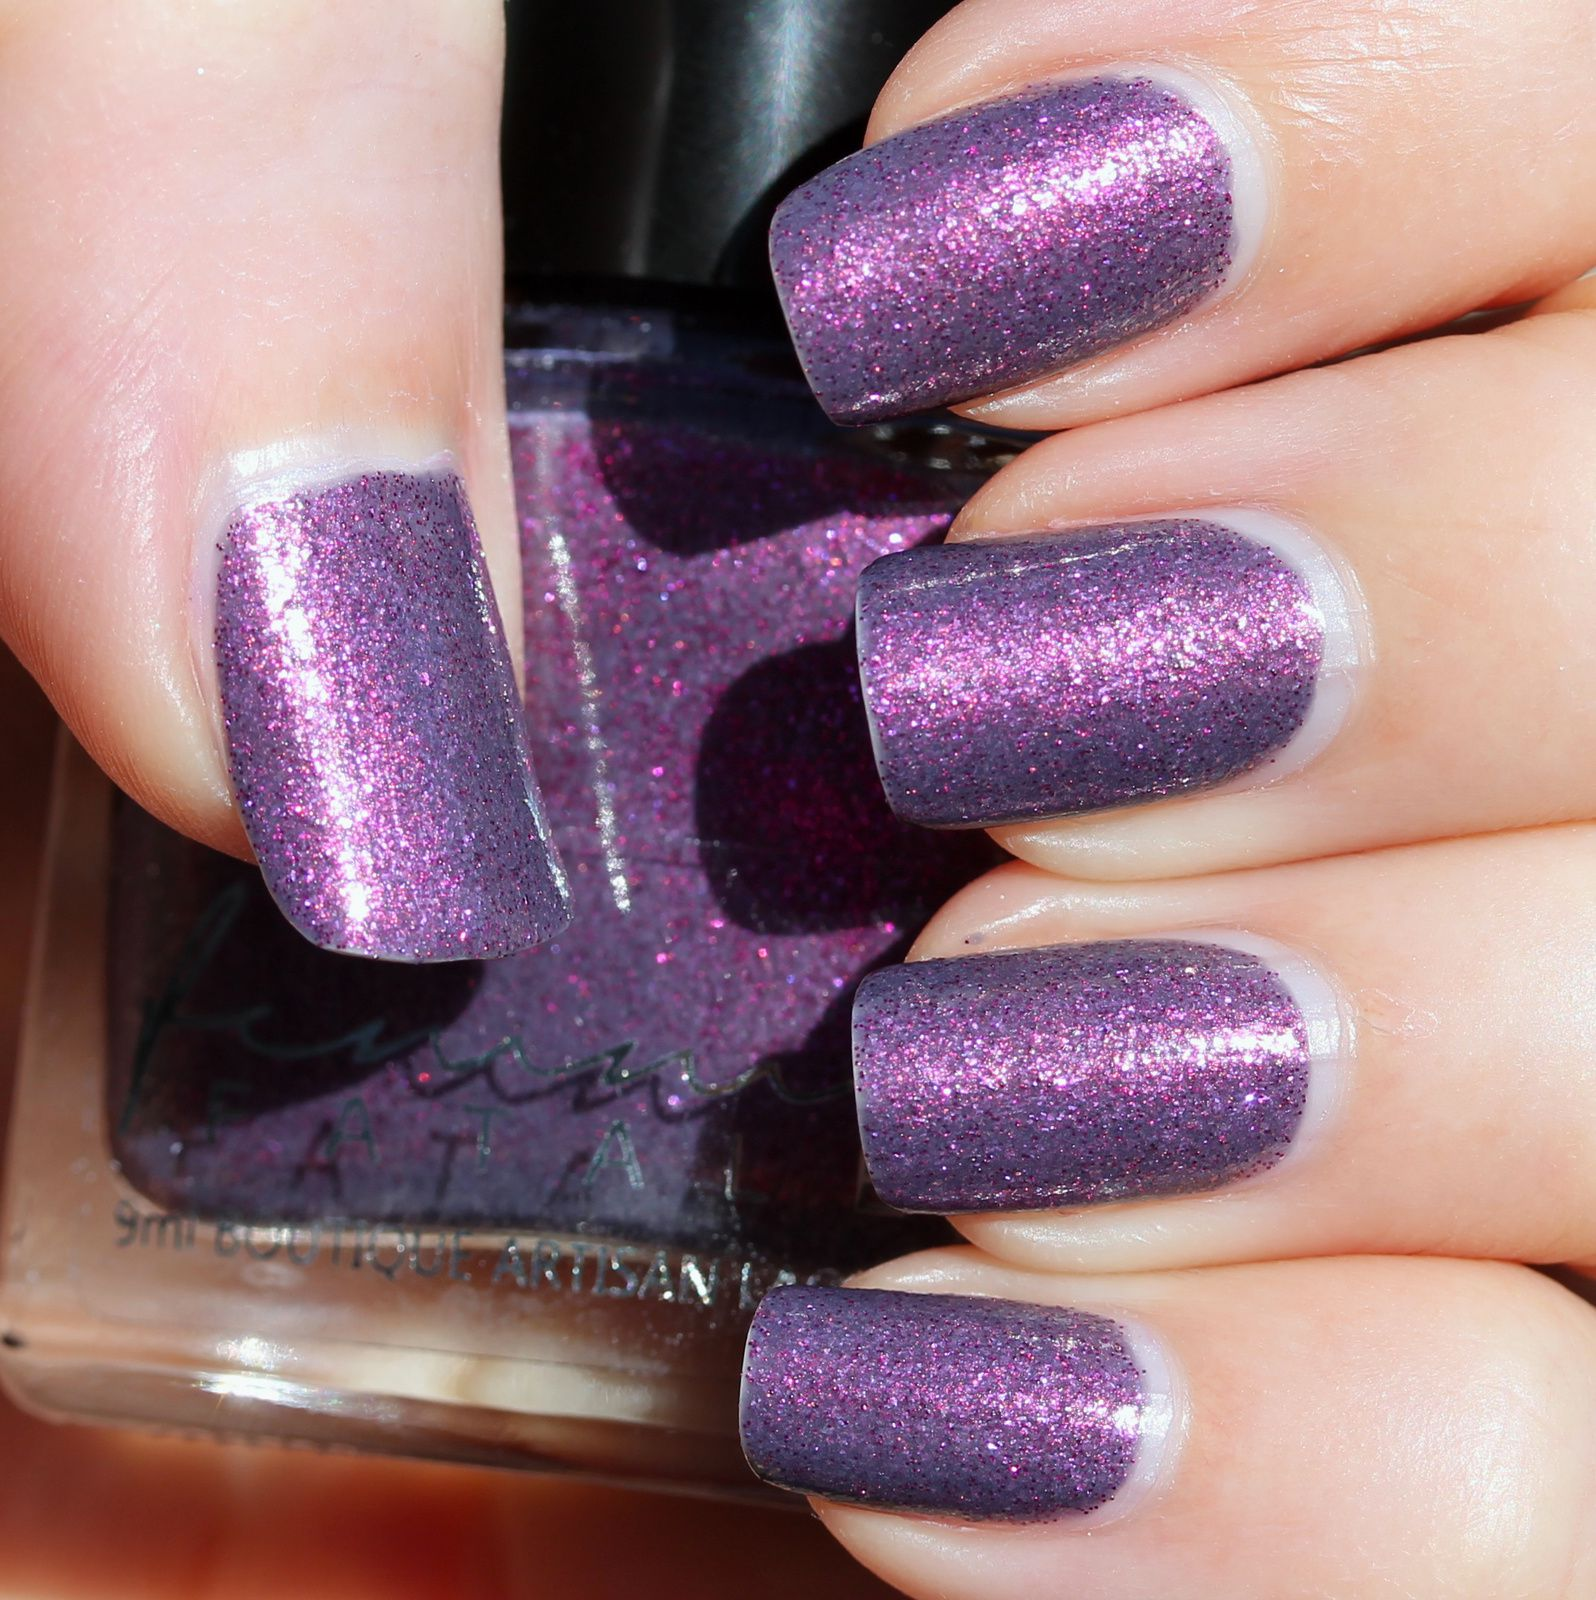 Femme Fatale Her Imperial Majesty (2 coats, no top coat)